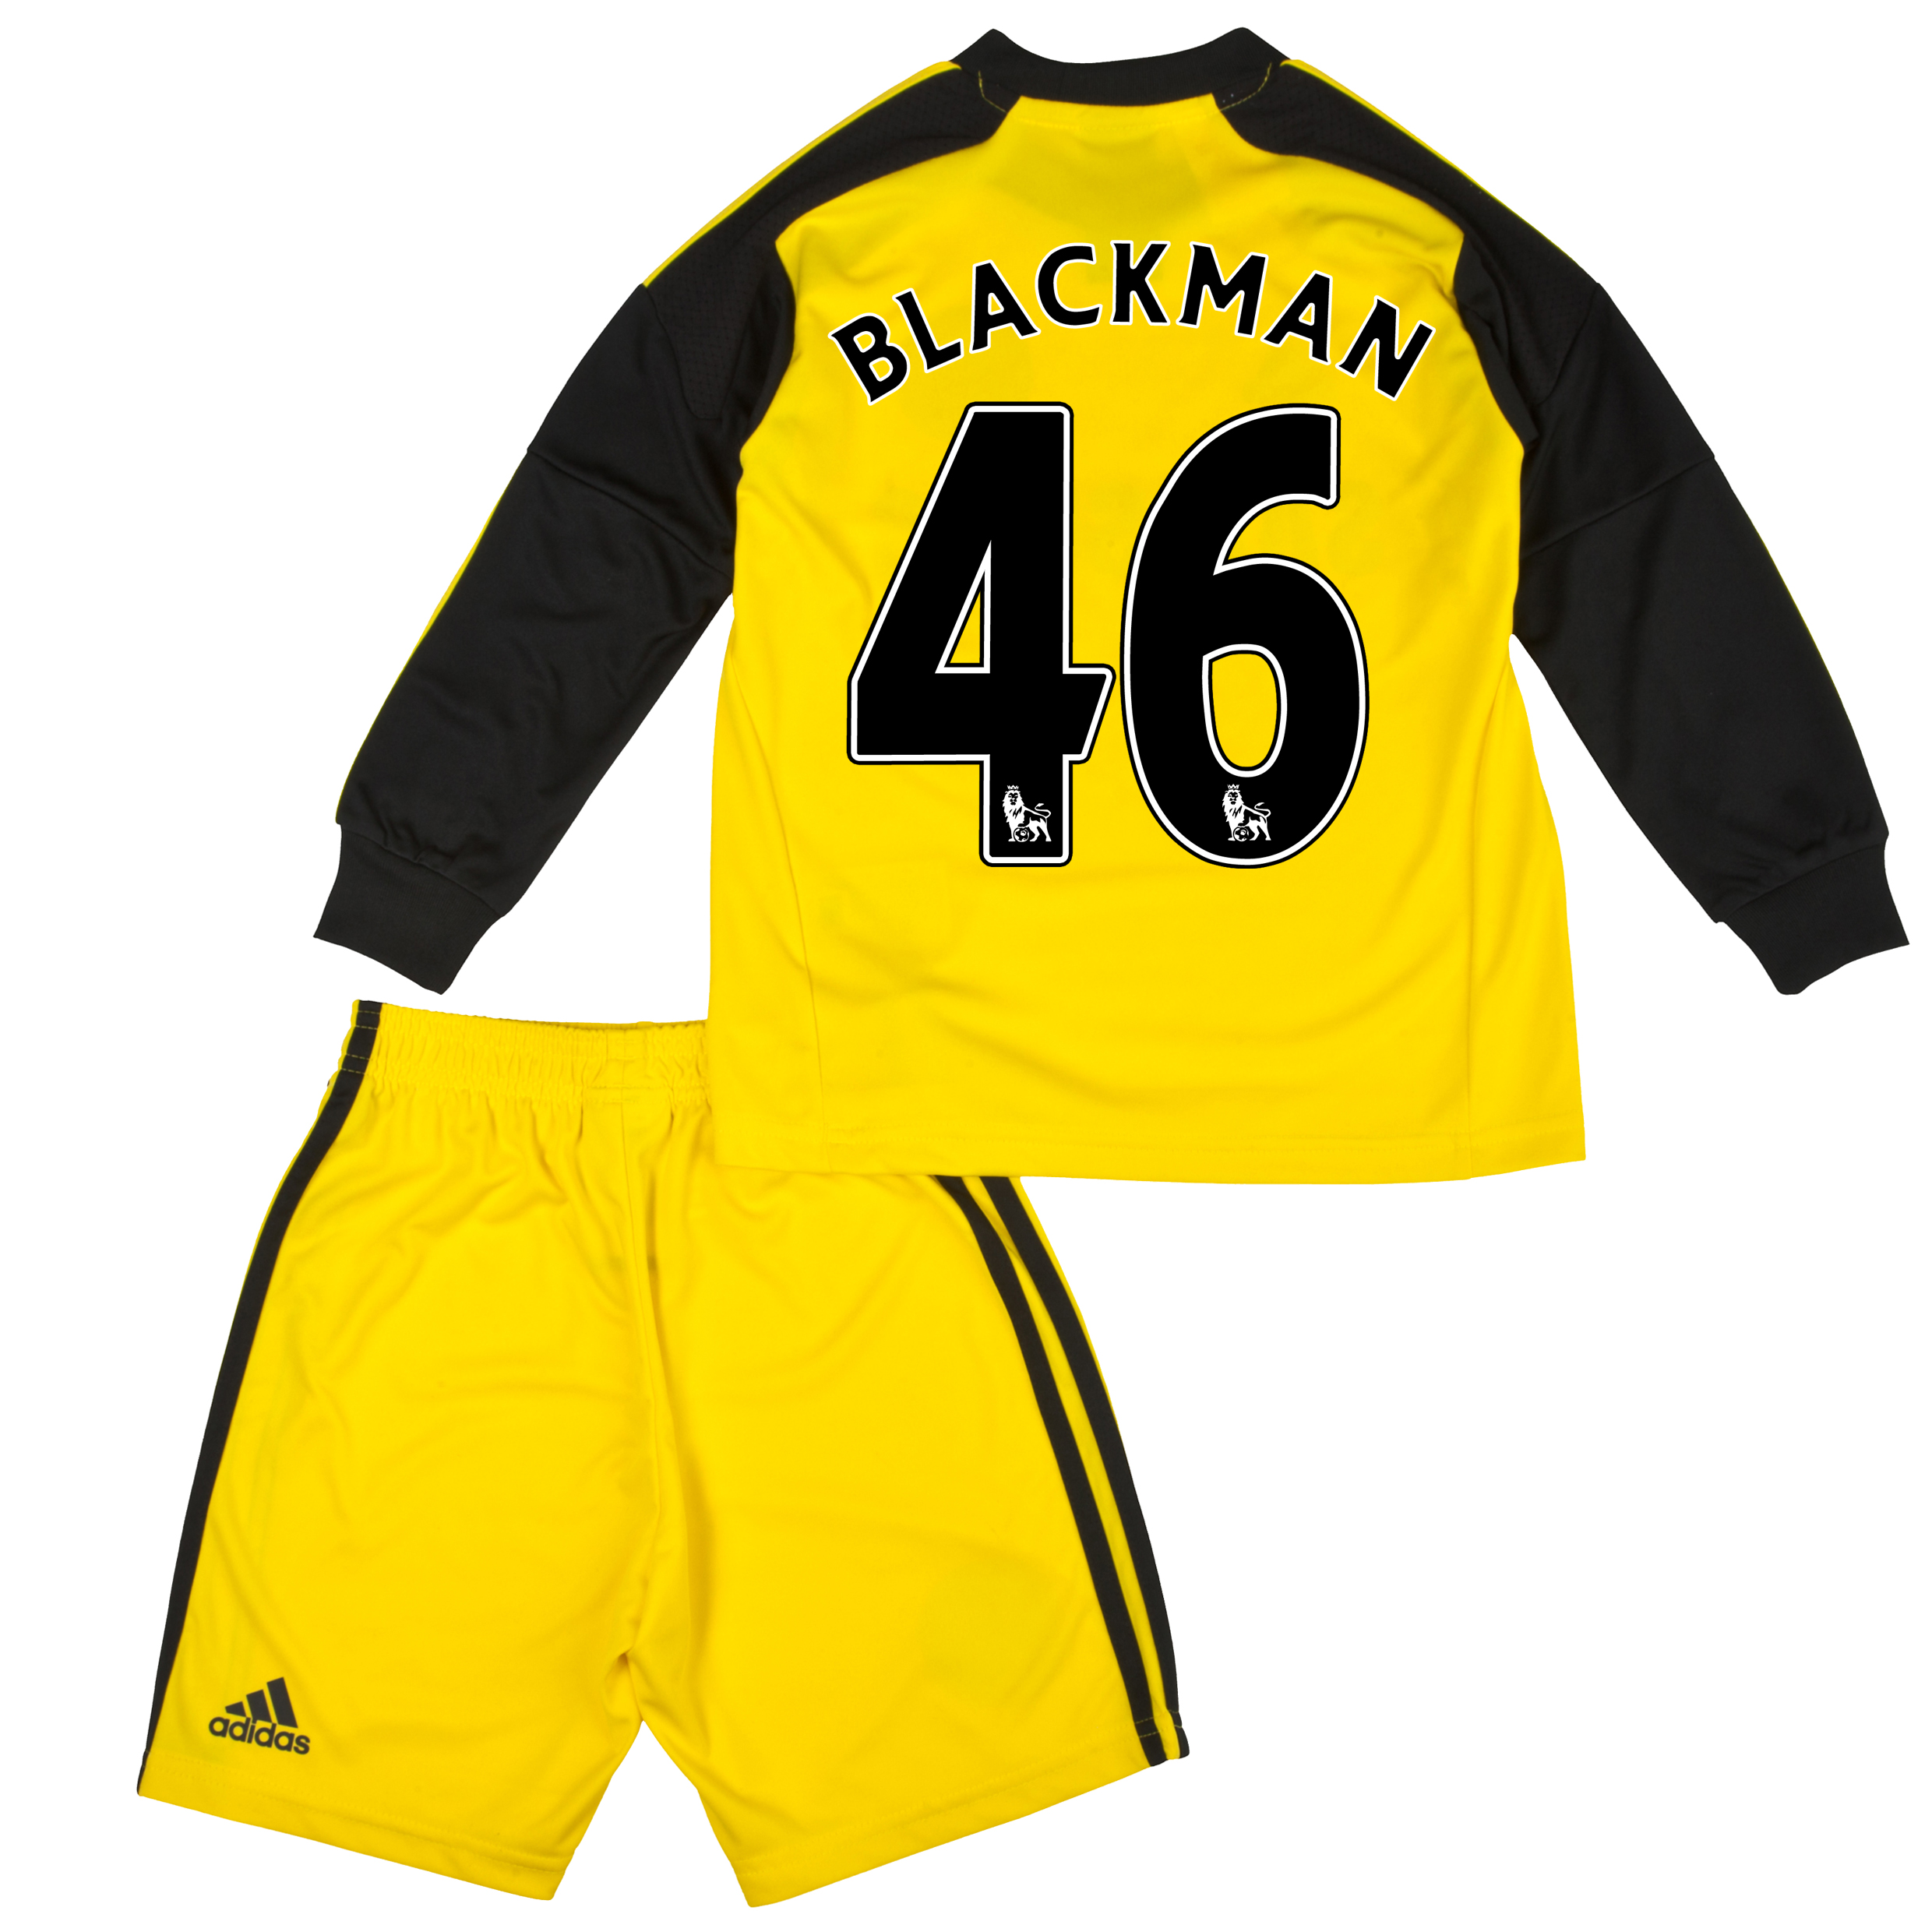 Chelsea Home Goalkeeper Mini Kit 2013/14 with Blackman 46 printing